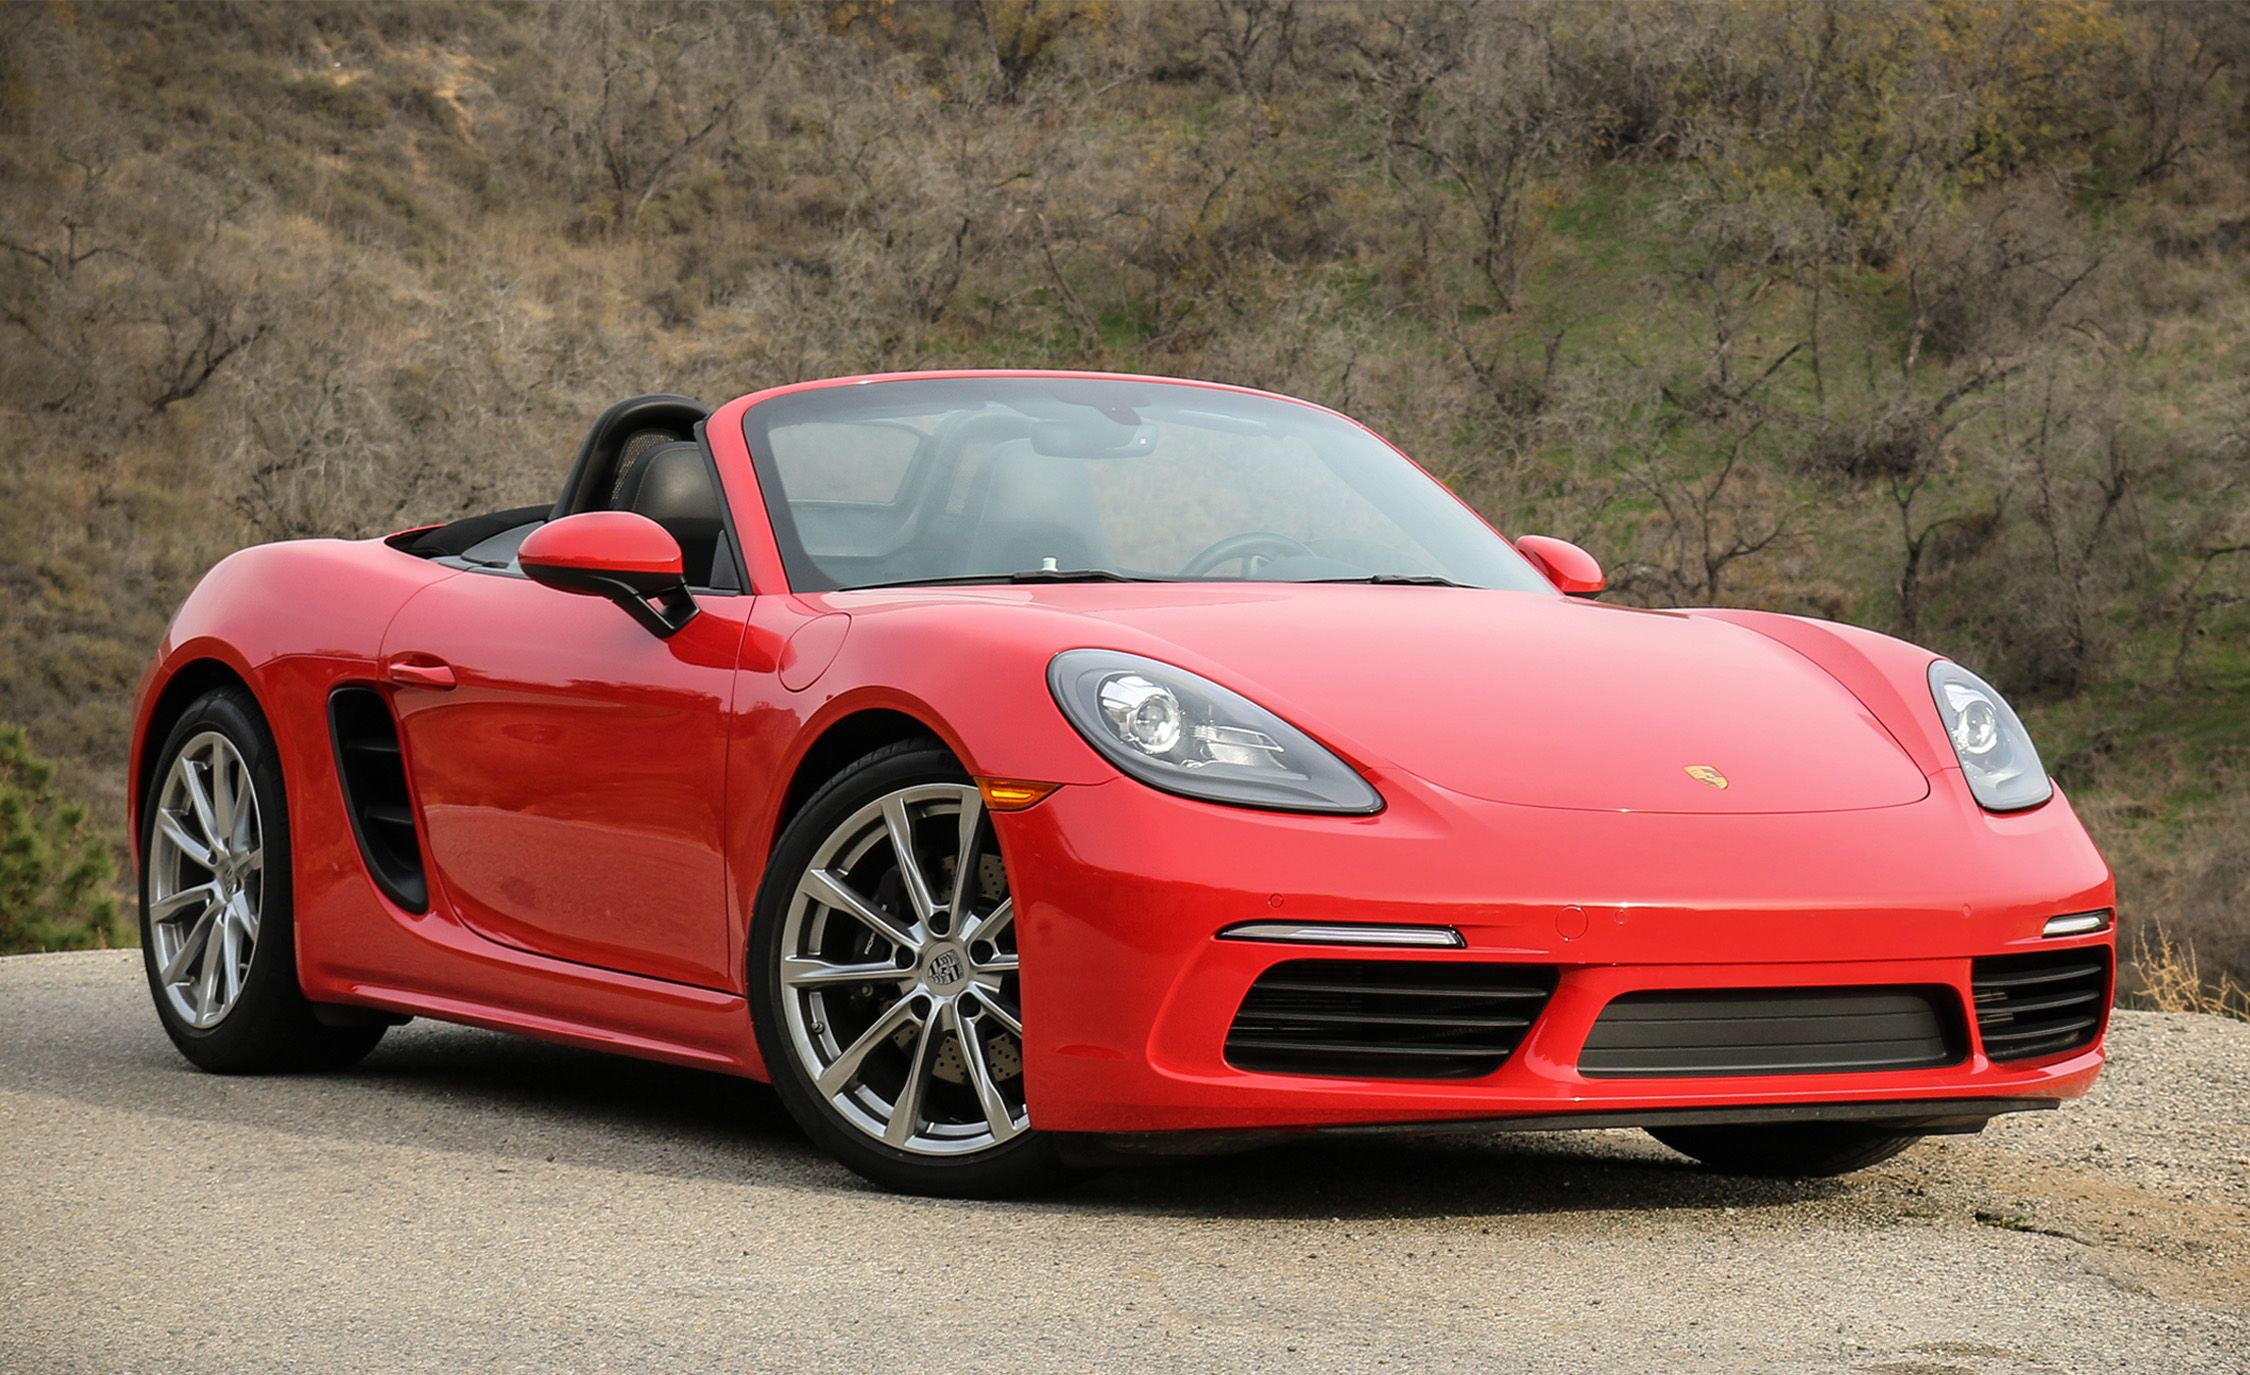 2017 porsche boxster 718 manual tested review car and. Black Bedroom Furniture Sets. Home Design Ideas